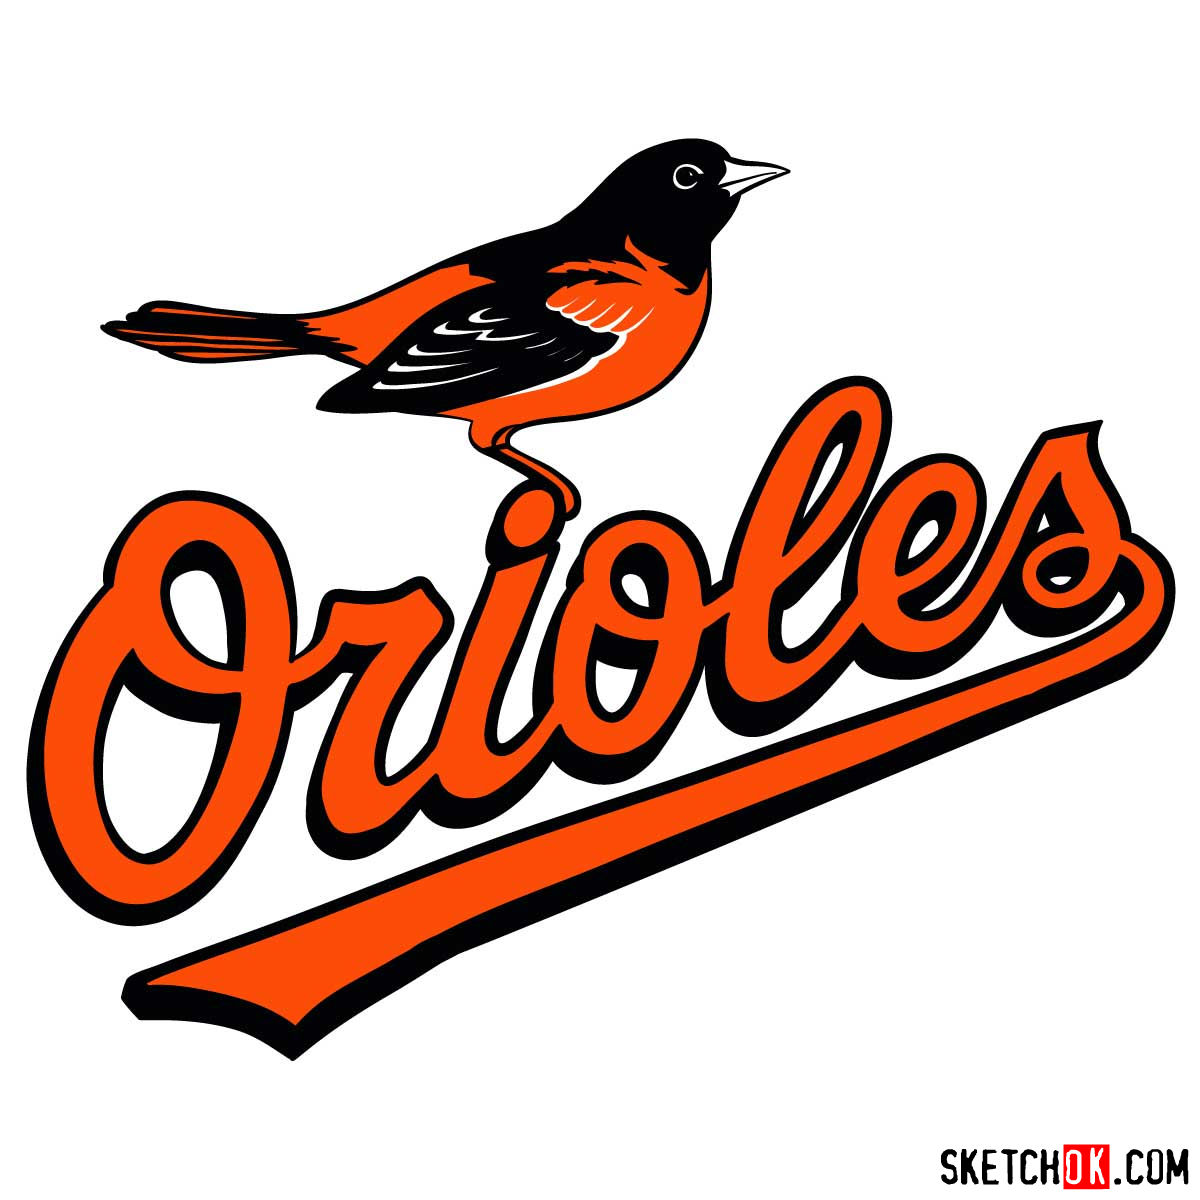 How to draw Baltimore Orioles logo | MLB logos